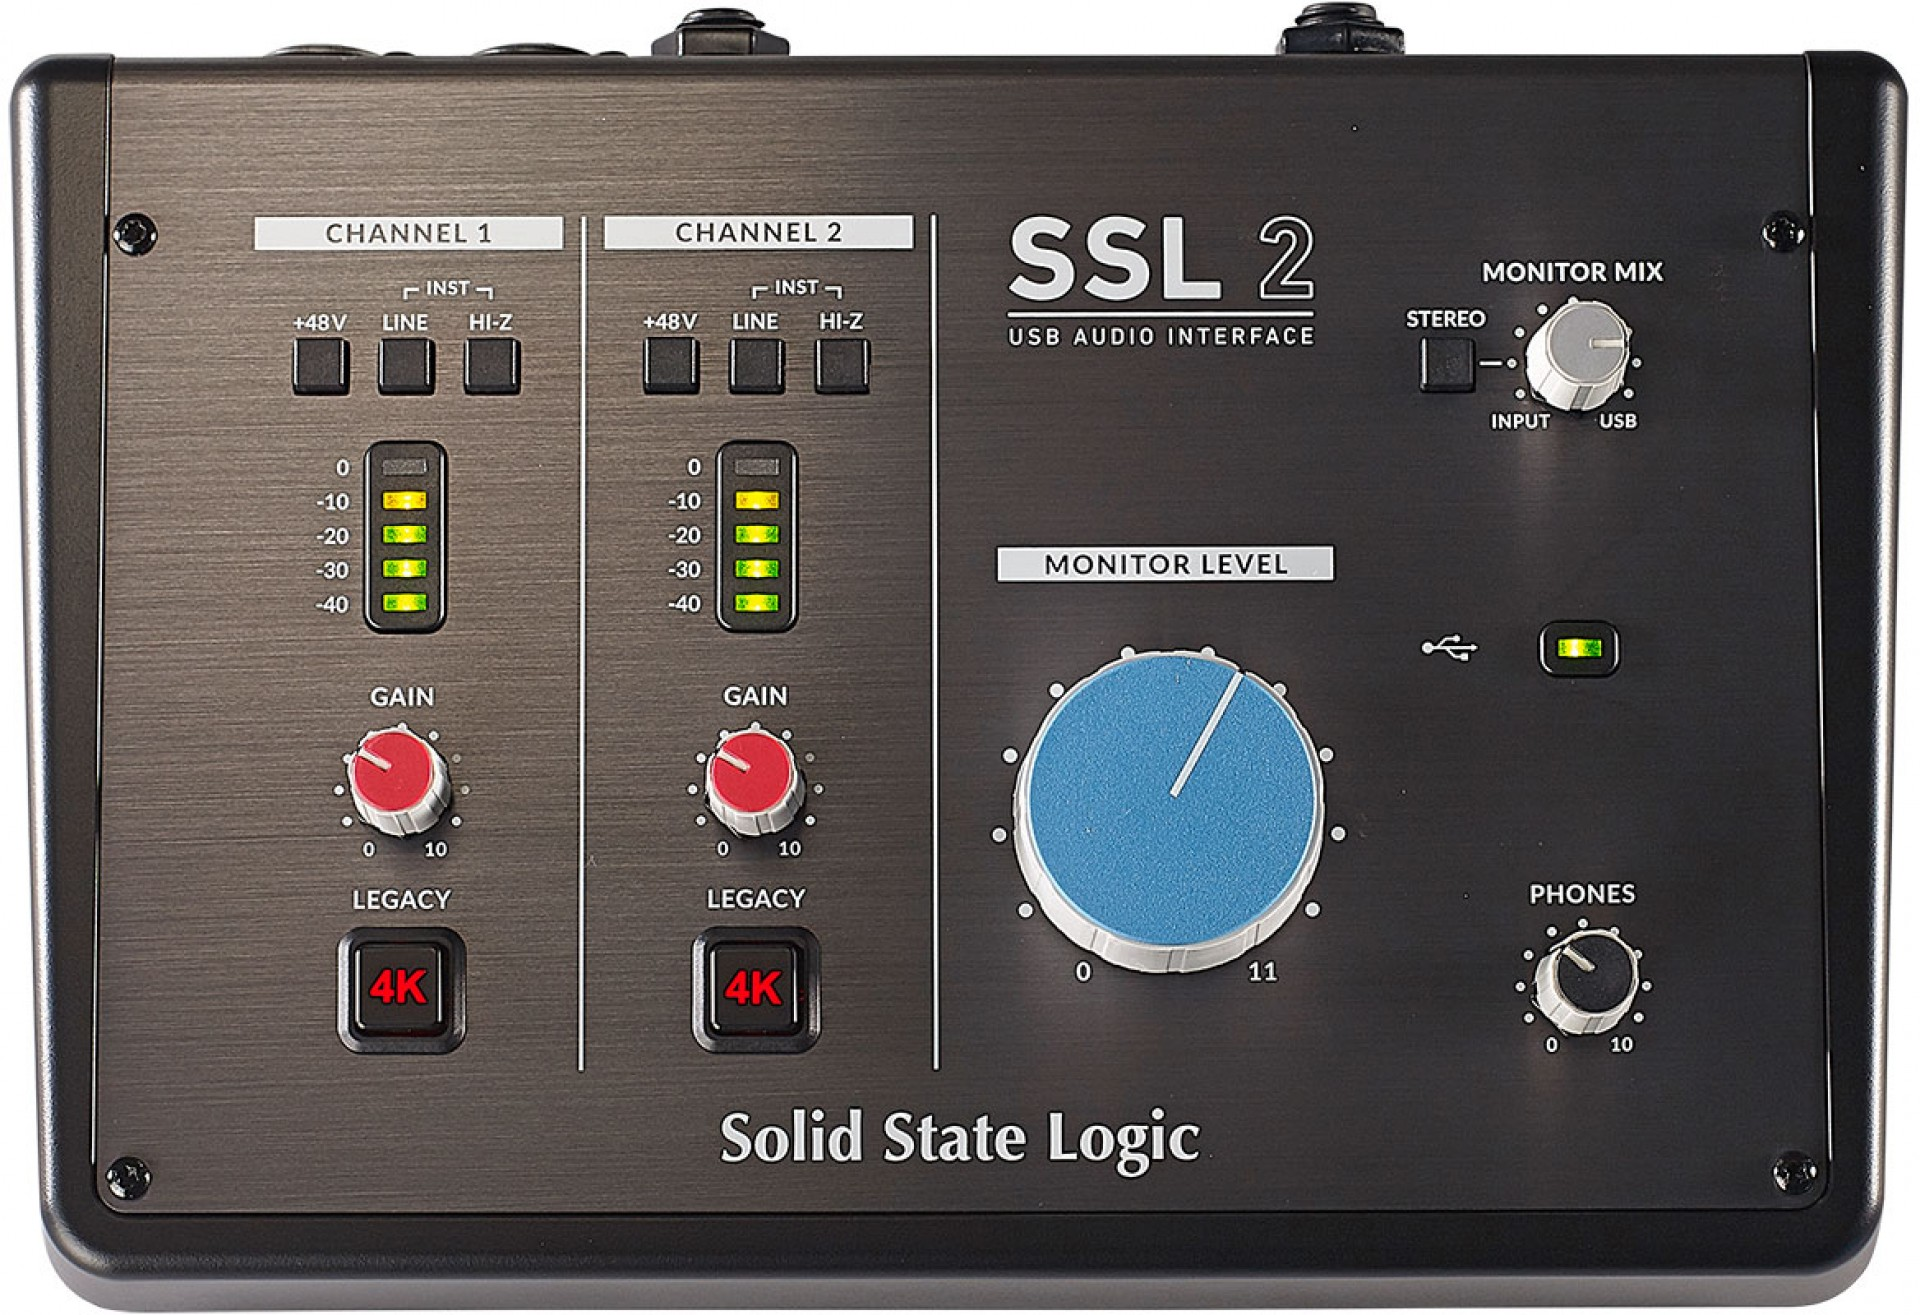 SSL SSL2 USB AUDIO INTERFACE